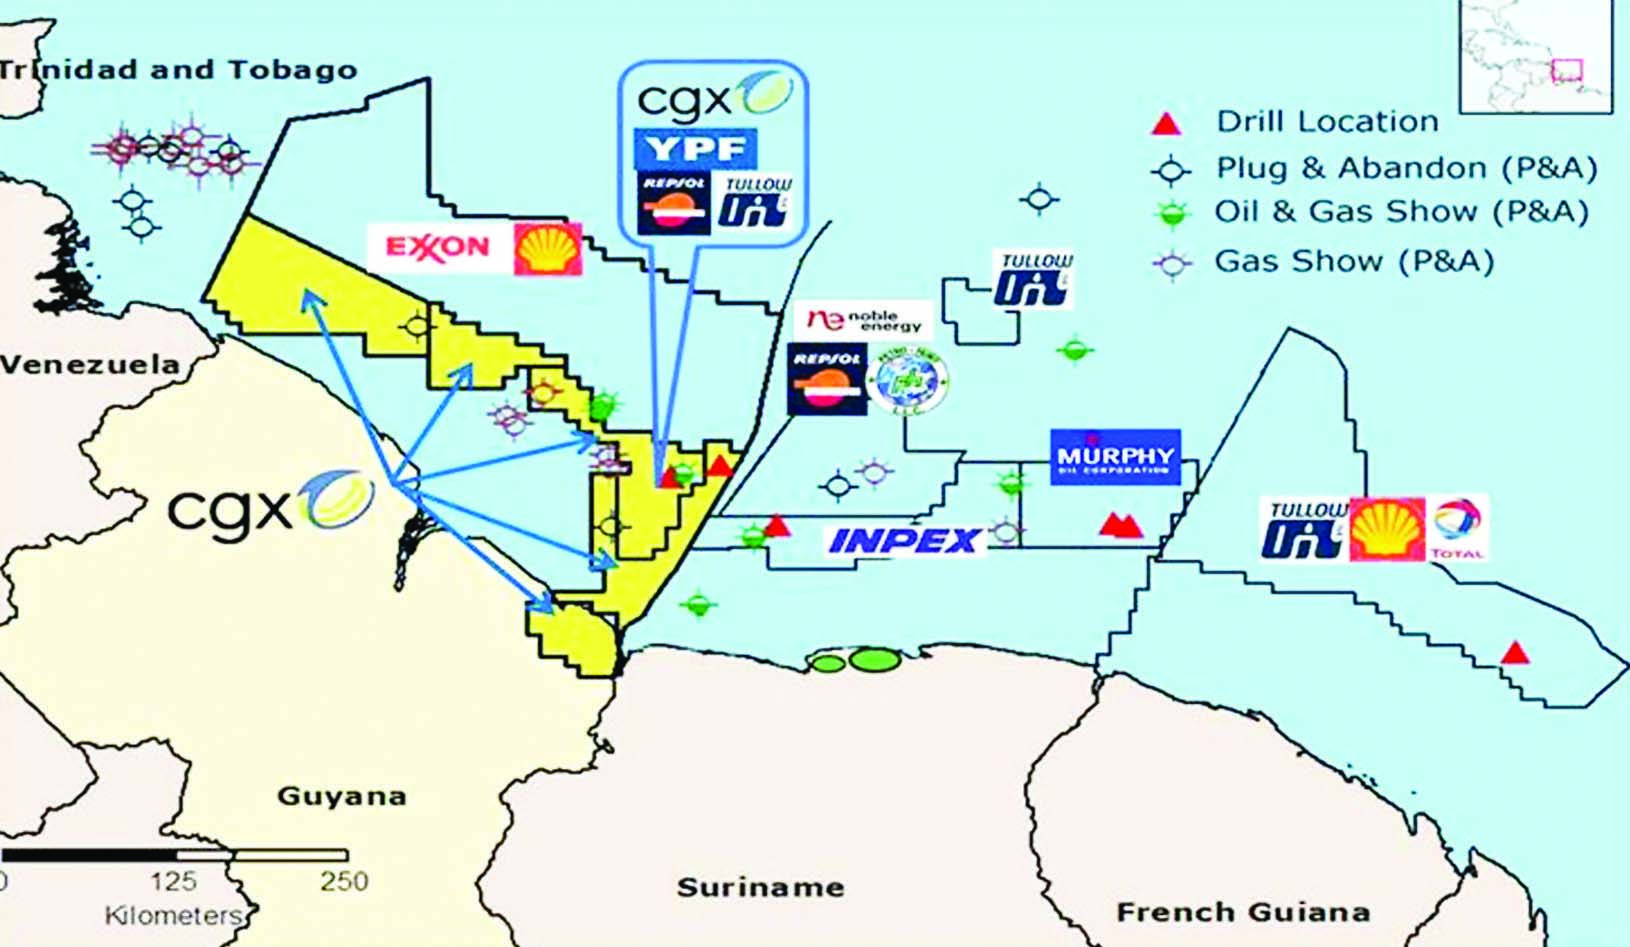 Cgx Back In The Game Looking To Drill 6 Wells Over Next